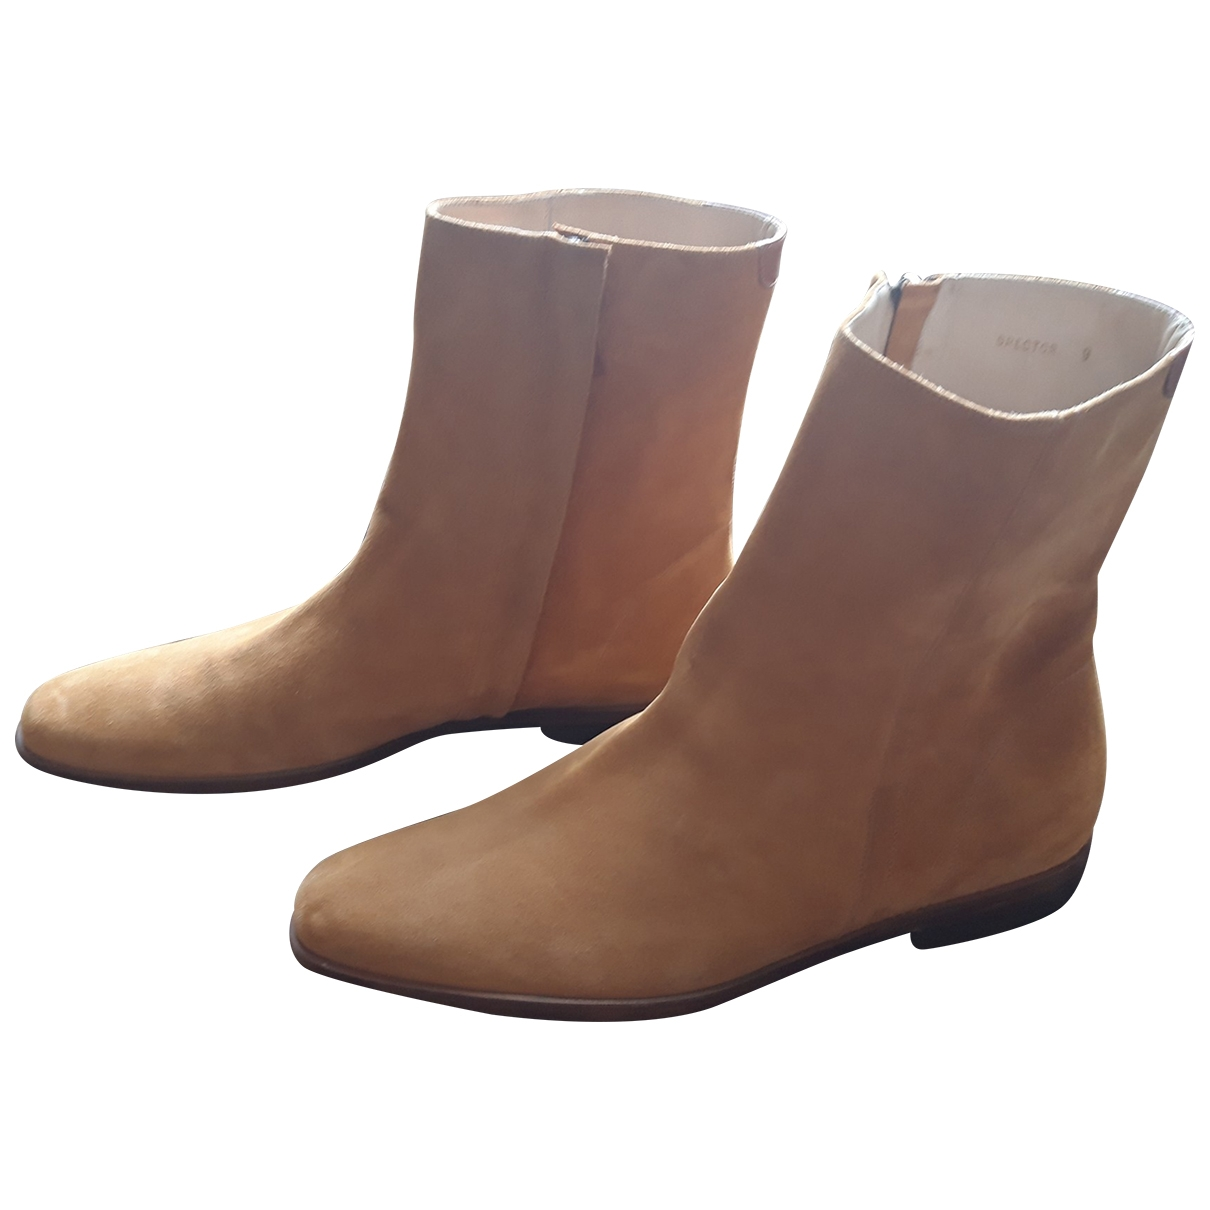 Mr. Hare \N Beige Suede Boots for Men 9 US